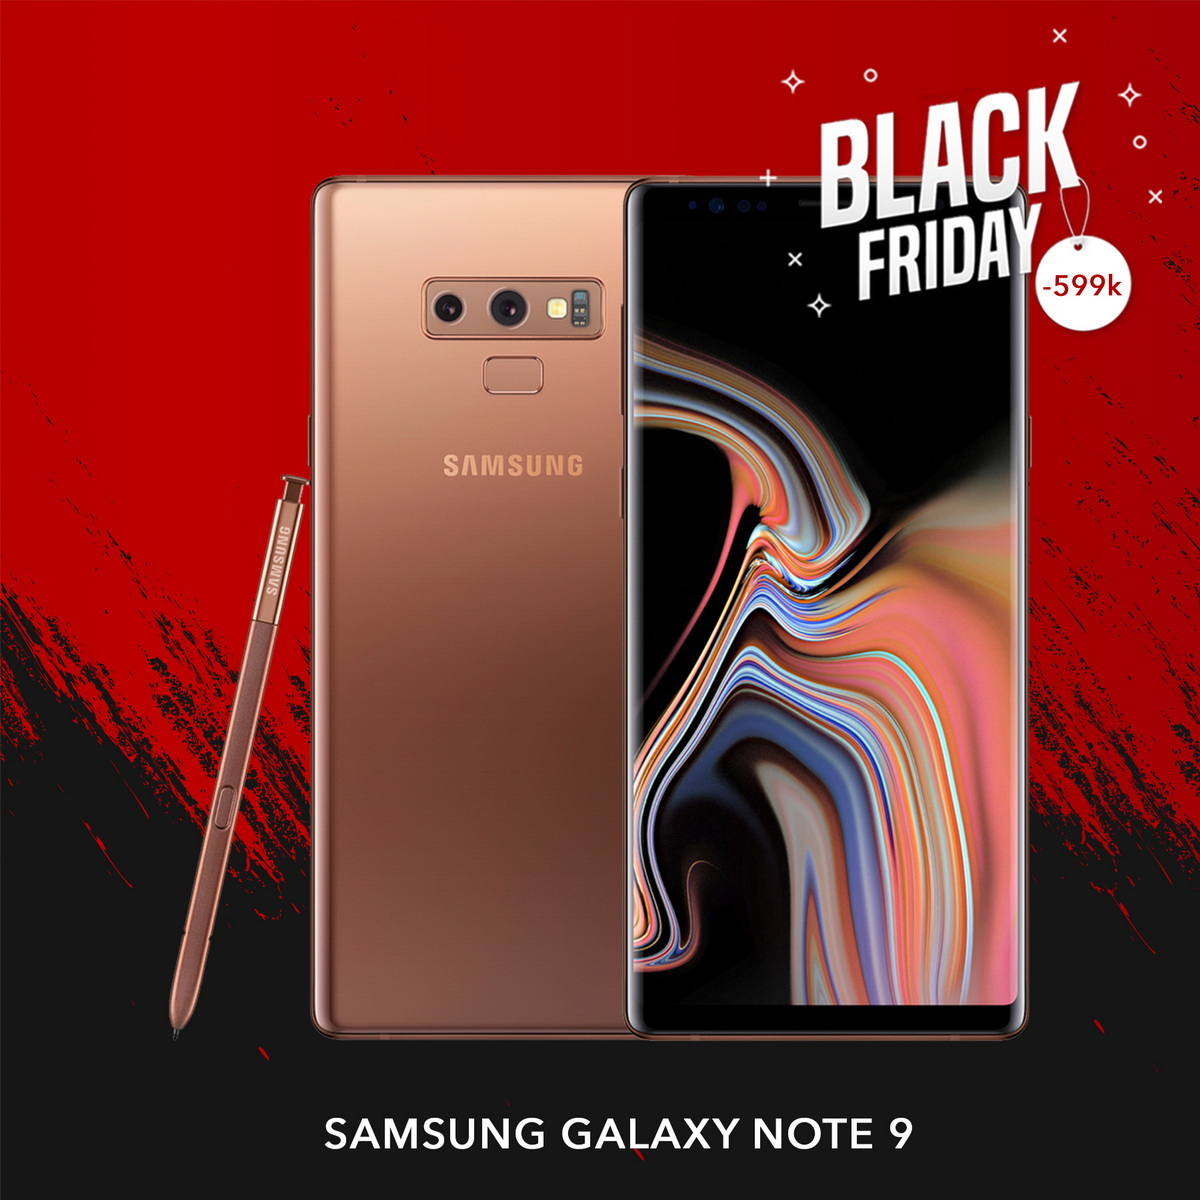 Samsung Galaxy Note 9 |  Black Friday